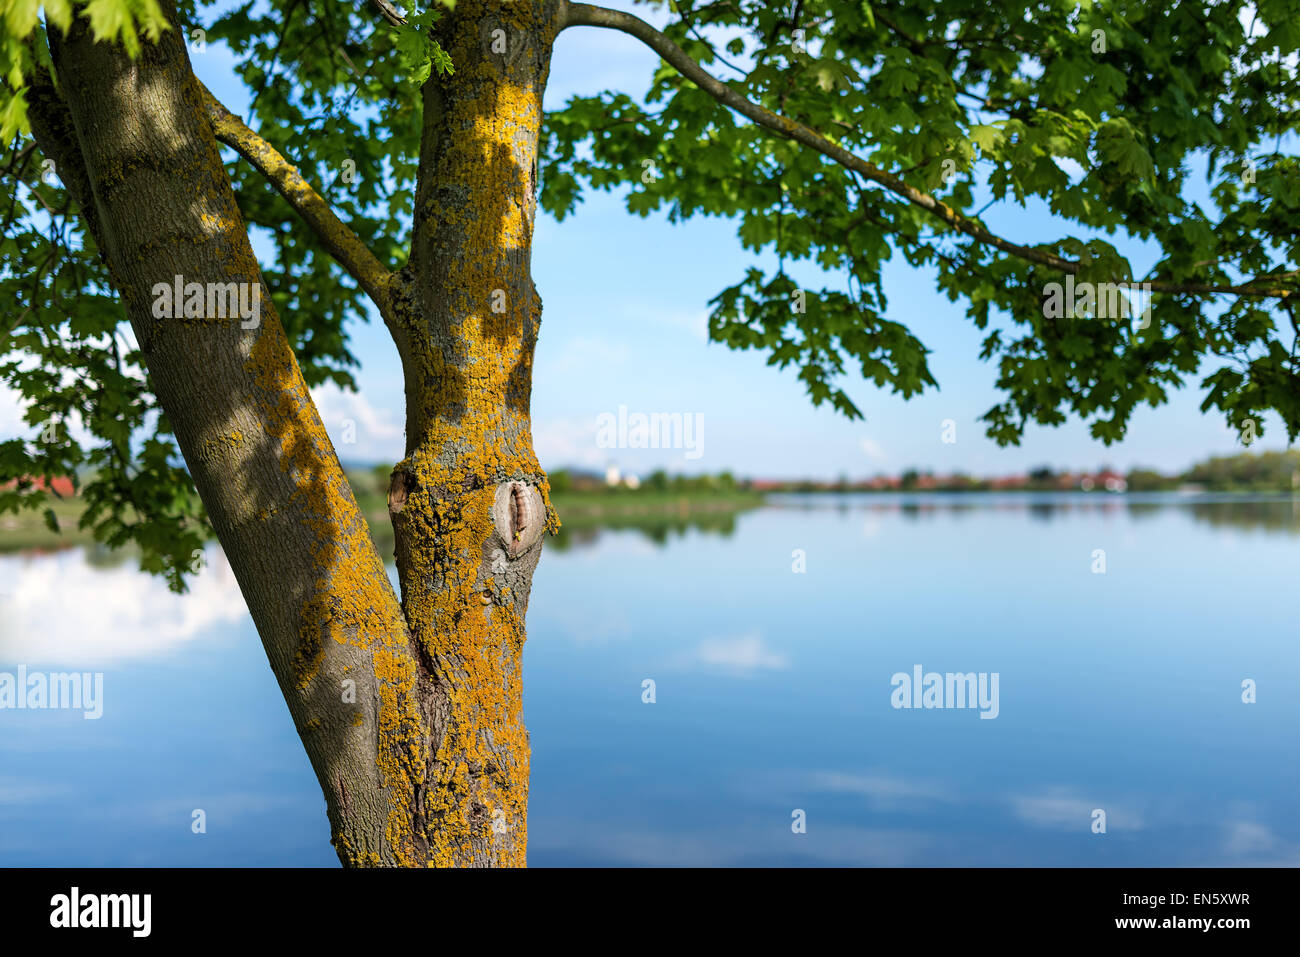 Spring water waterfront Lake River Tree green bloomed blooming reed graze pastures green space for text layout, - Stock Image